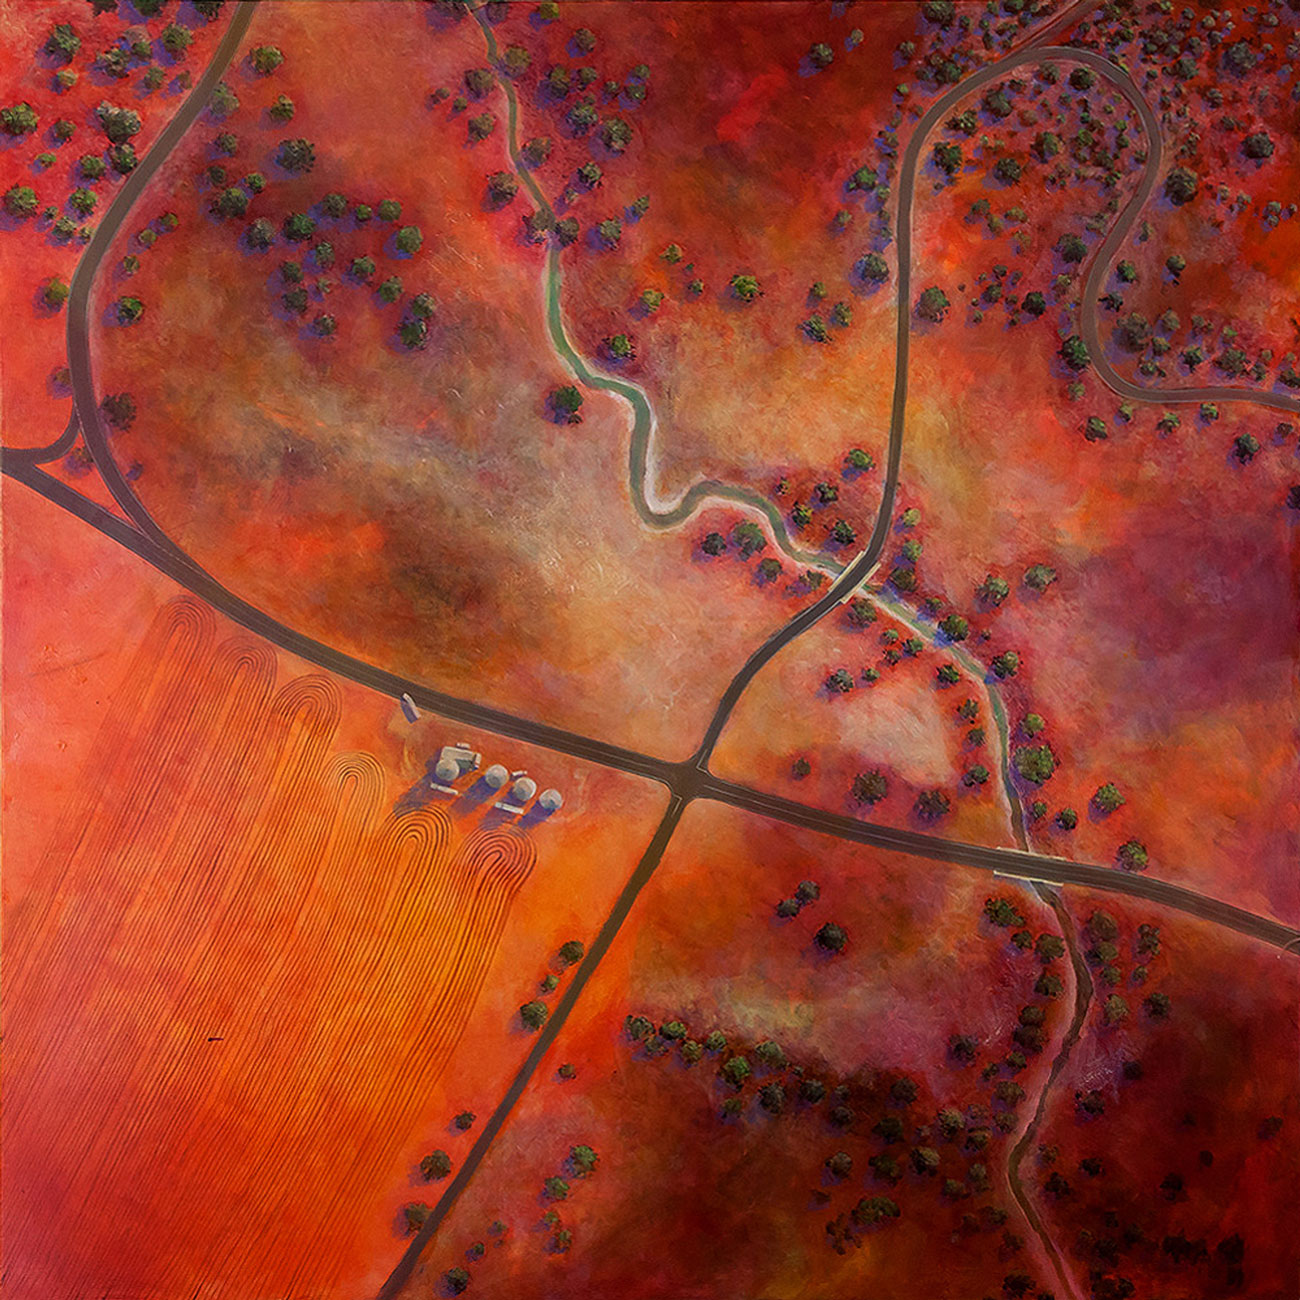 Red Earth Farming by Pete Martin